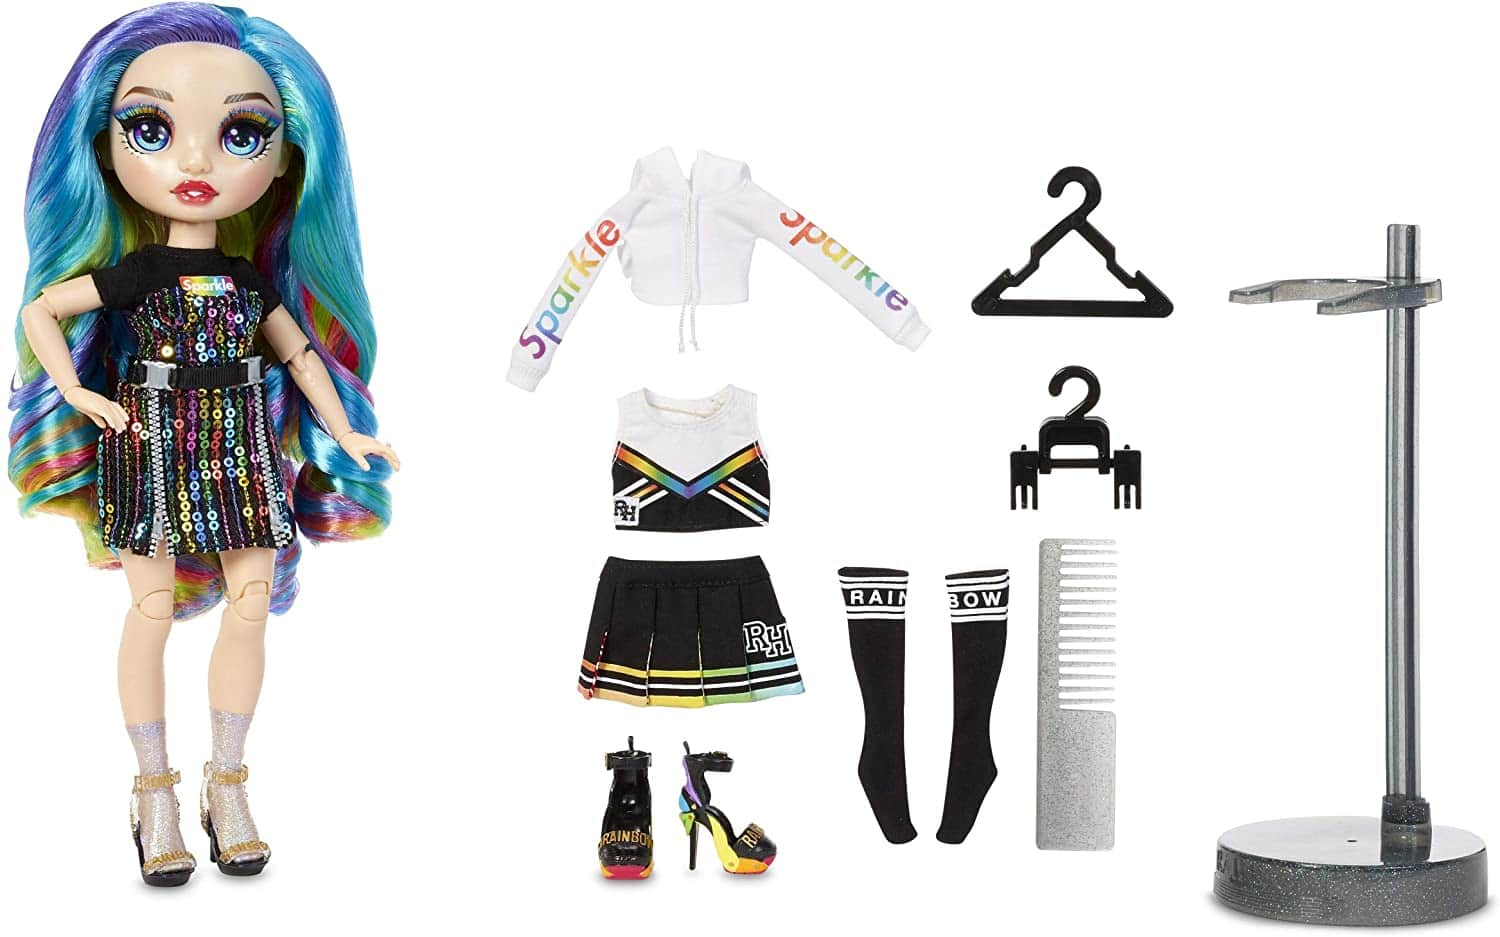 Rainbow High Ruby Anderson - Red Clothes Fashion Doll with two outfits ($10.94) FS with Amazon prime or orders $25+ (or Poppy Rowan at WalMart)